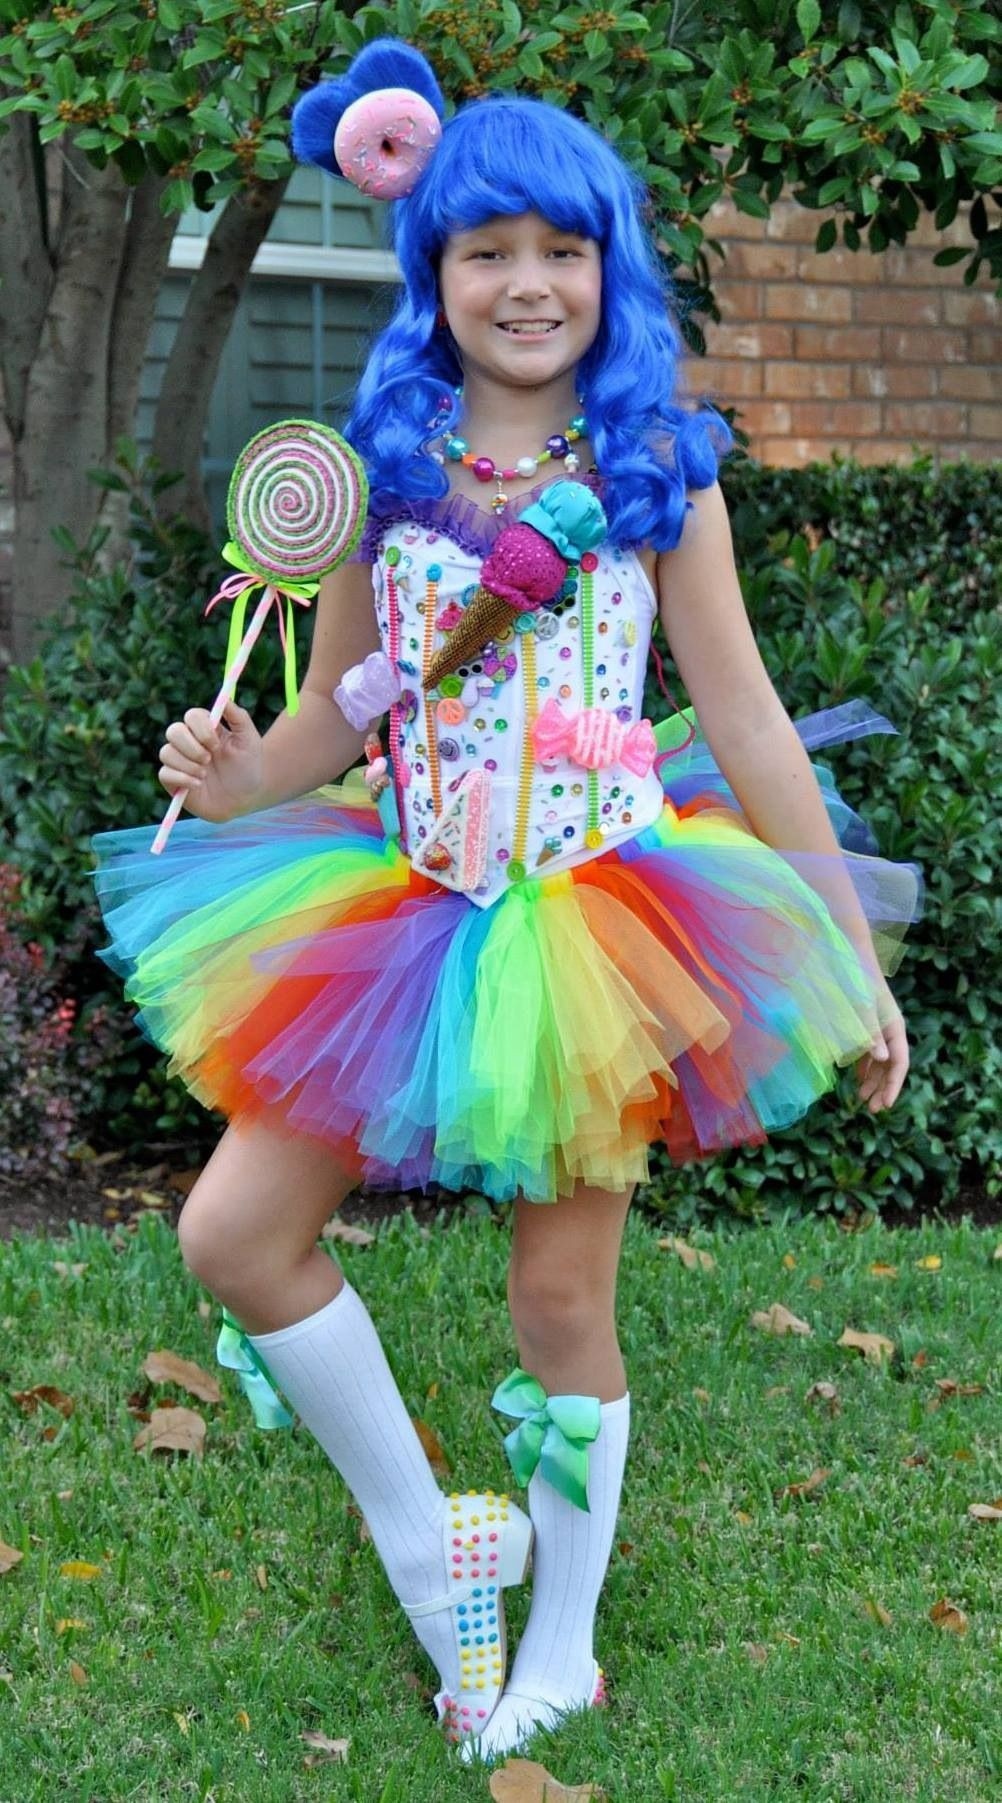 DIY Candy Costume  Pin by T Manning on Fall frenzy